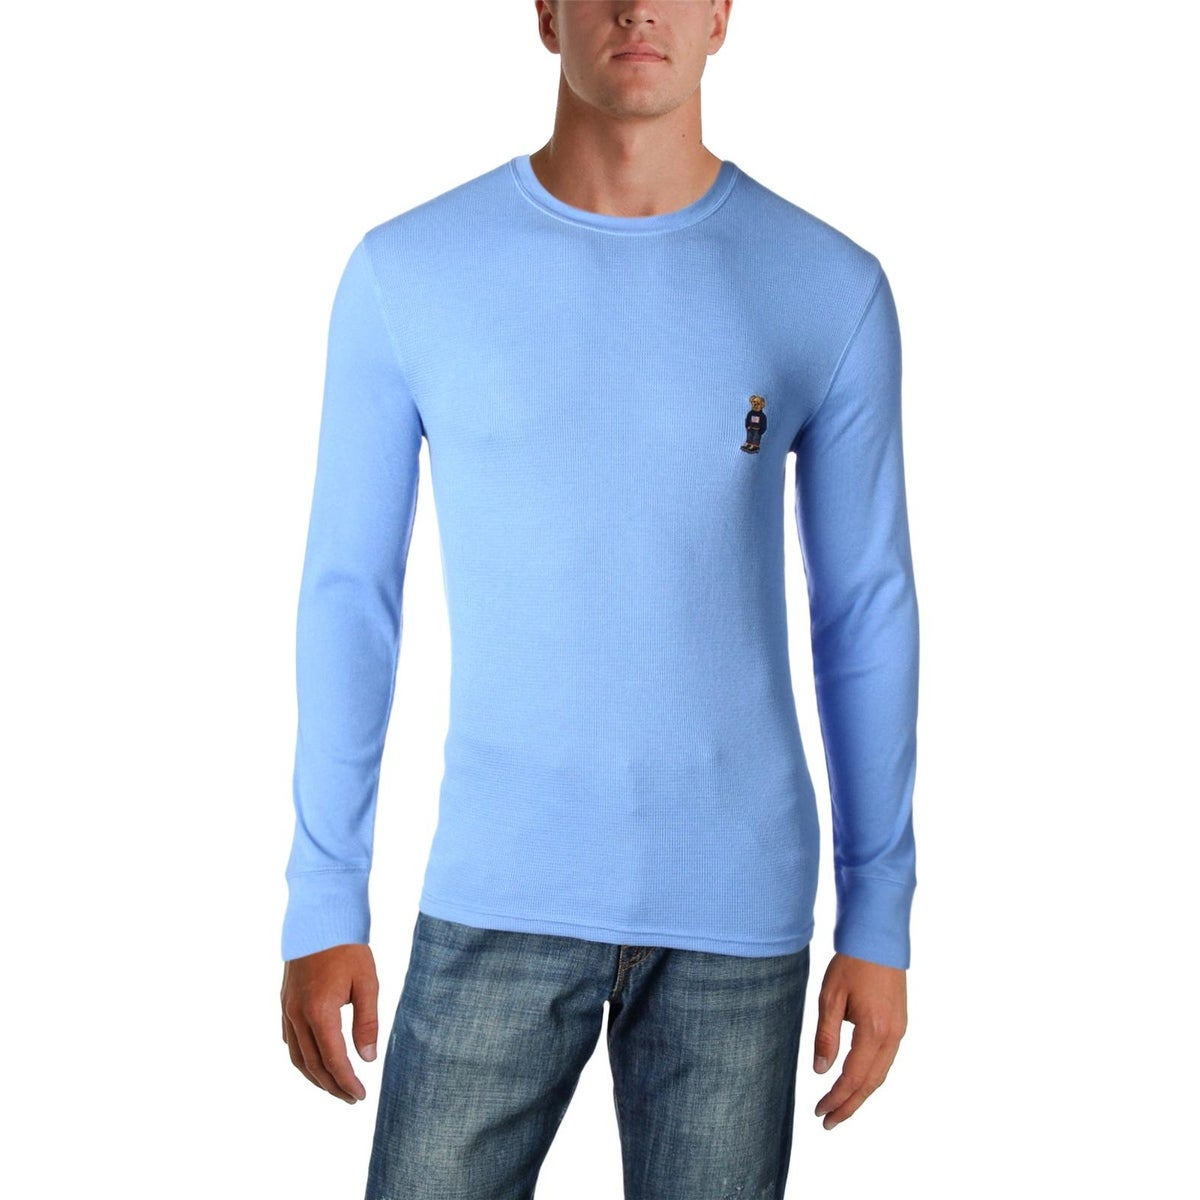 c55c5f90 Shop Polo Ralph Lauren Mens Thermal Shirt Waffle-Knit Lightweight - Free  Shipping On Orders Over $45 - Overstock - 26639388